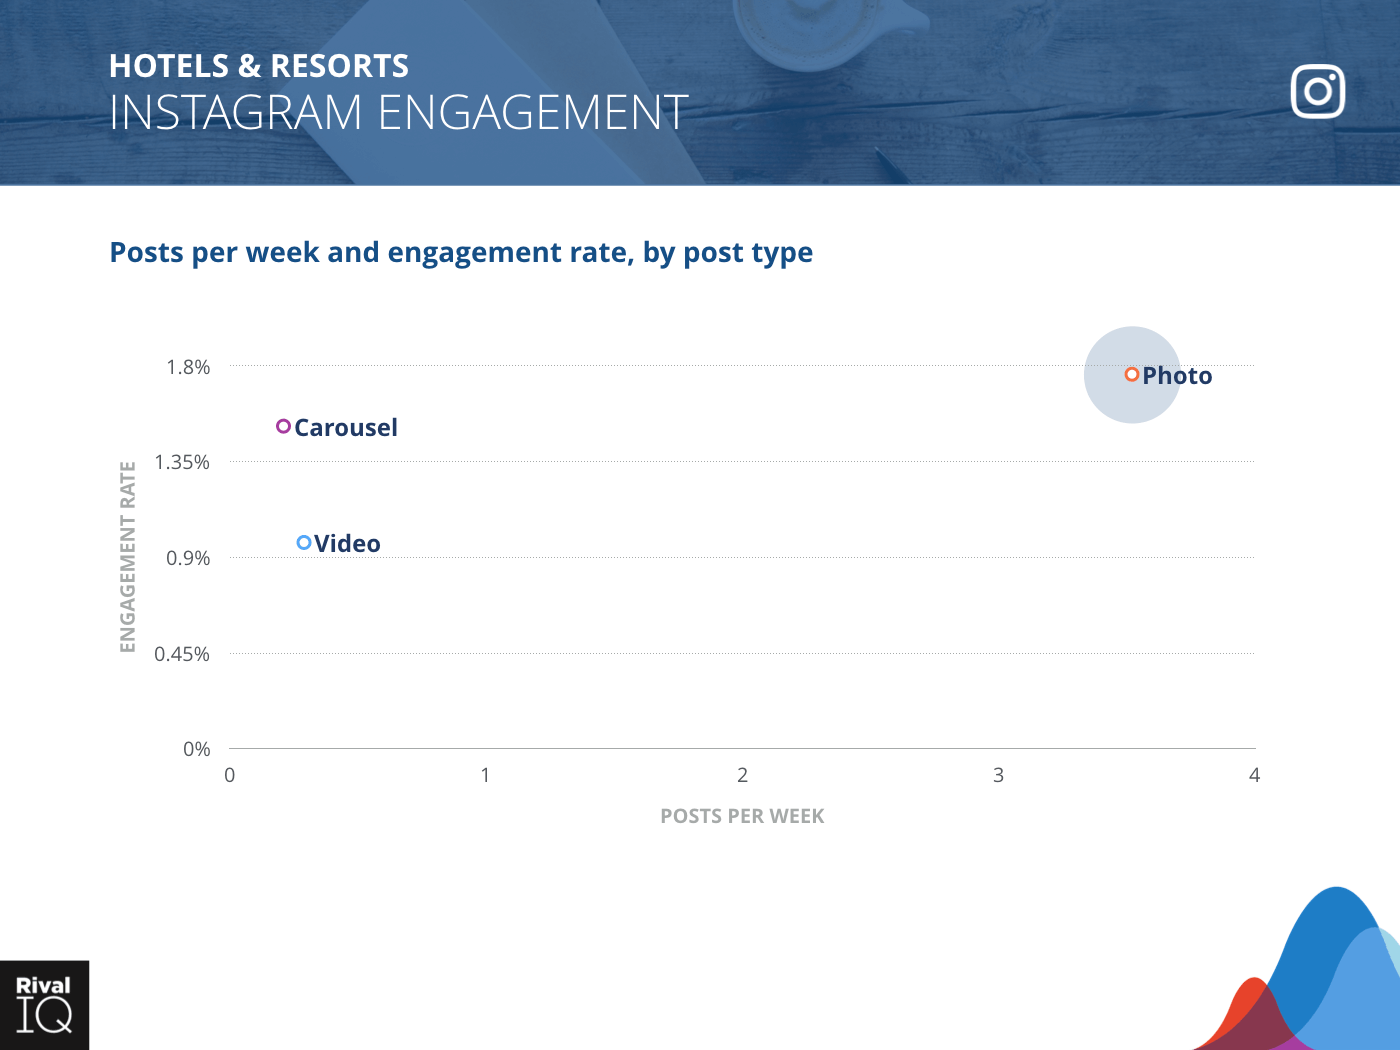 Hotels & Resorts Industry: scatter graph, average post per week by type and engagement rate on Instagram